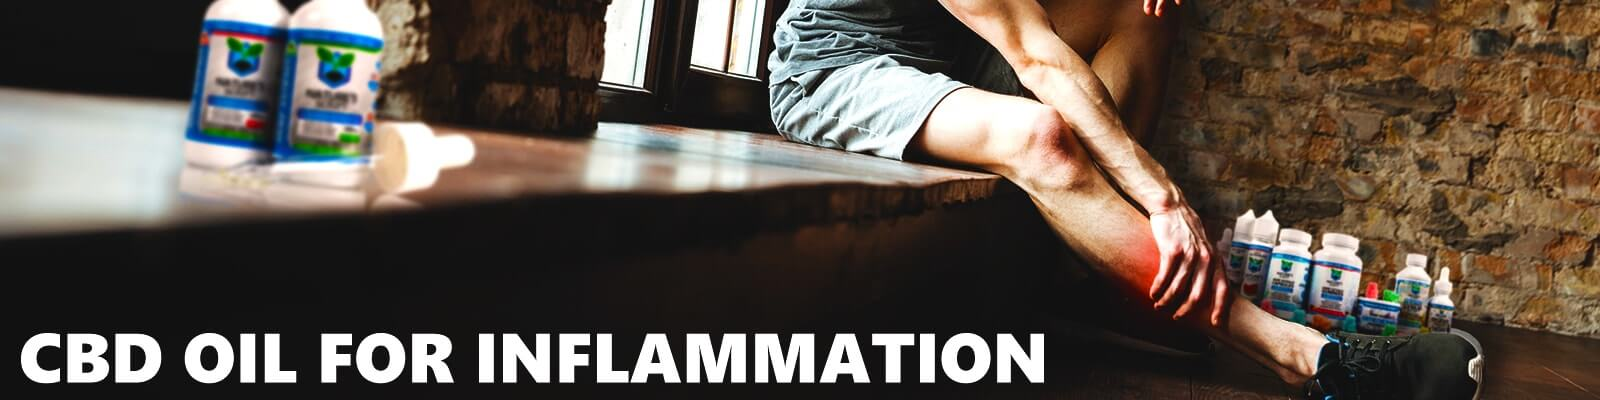 cbd oil for inflammation